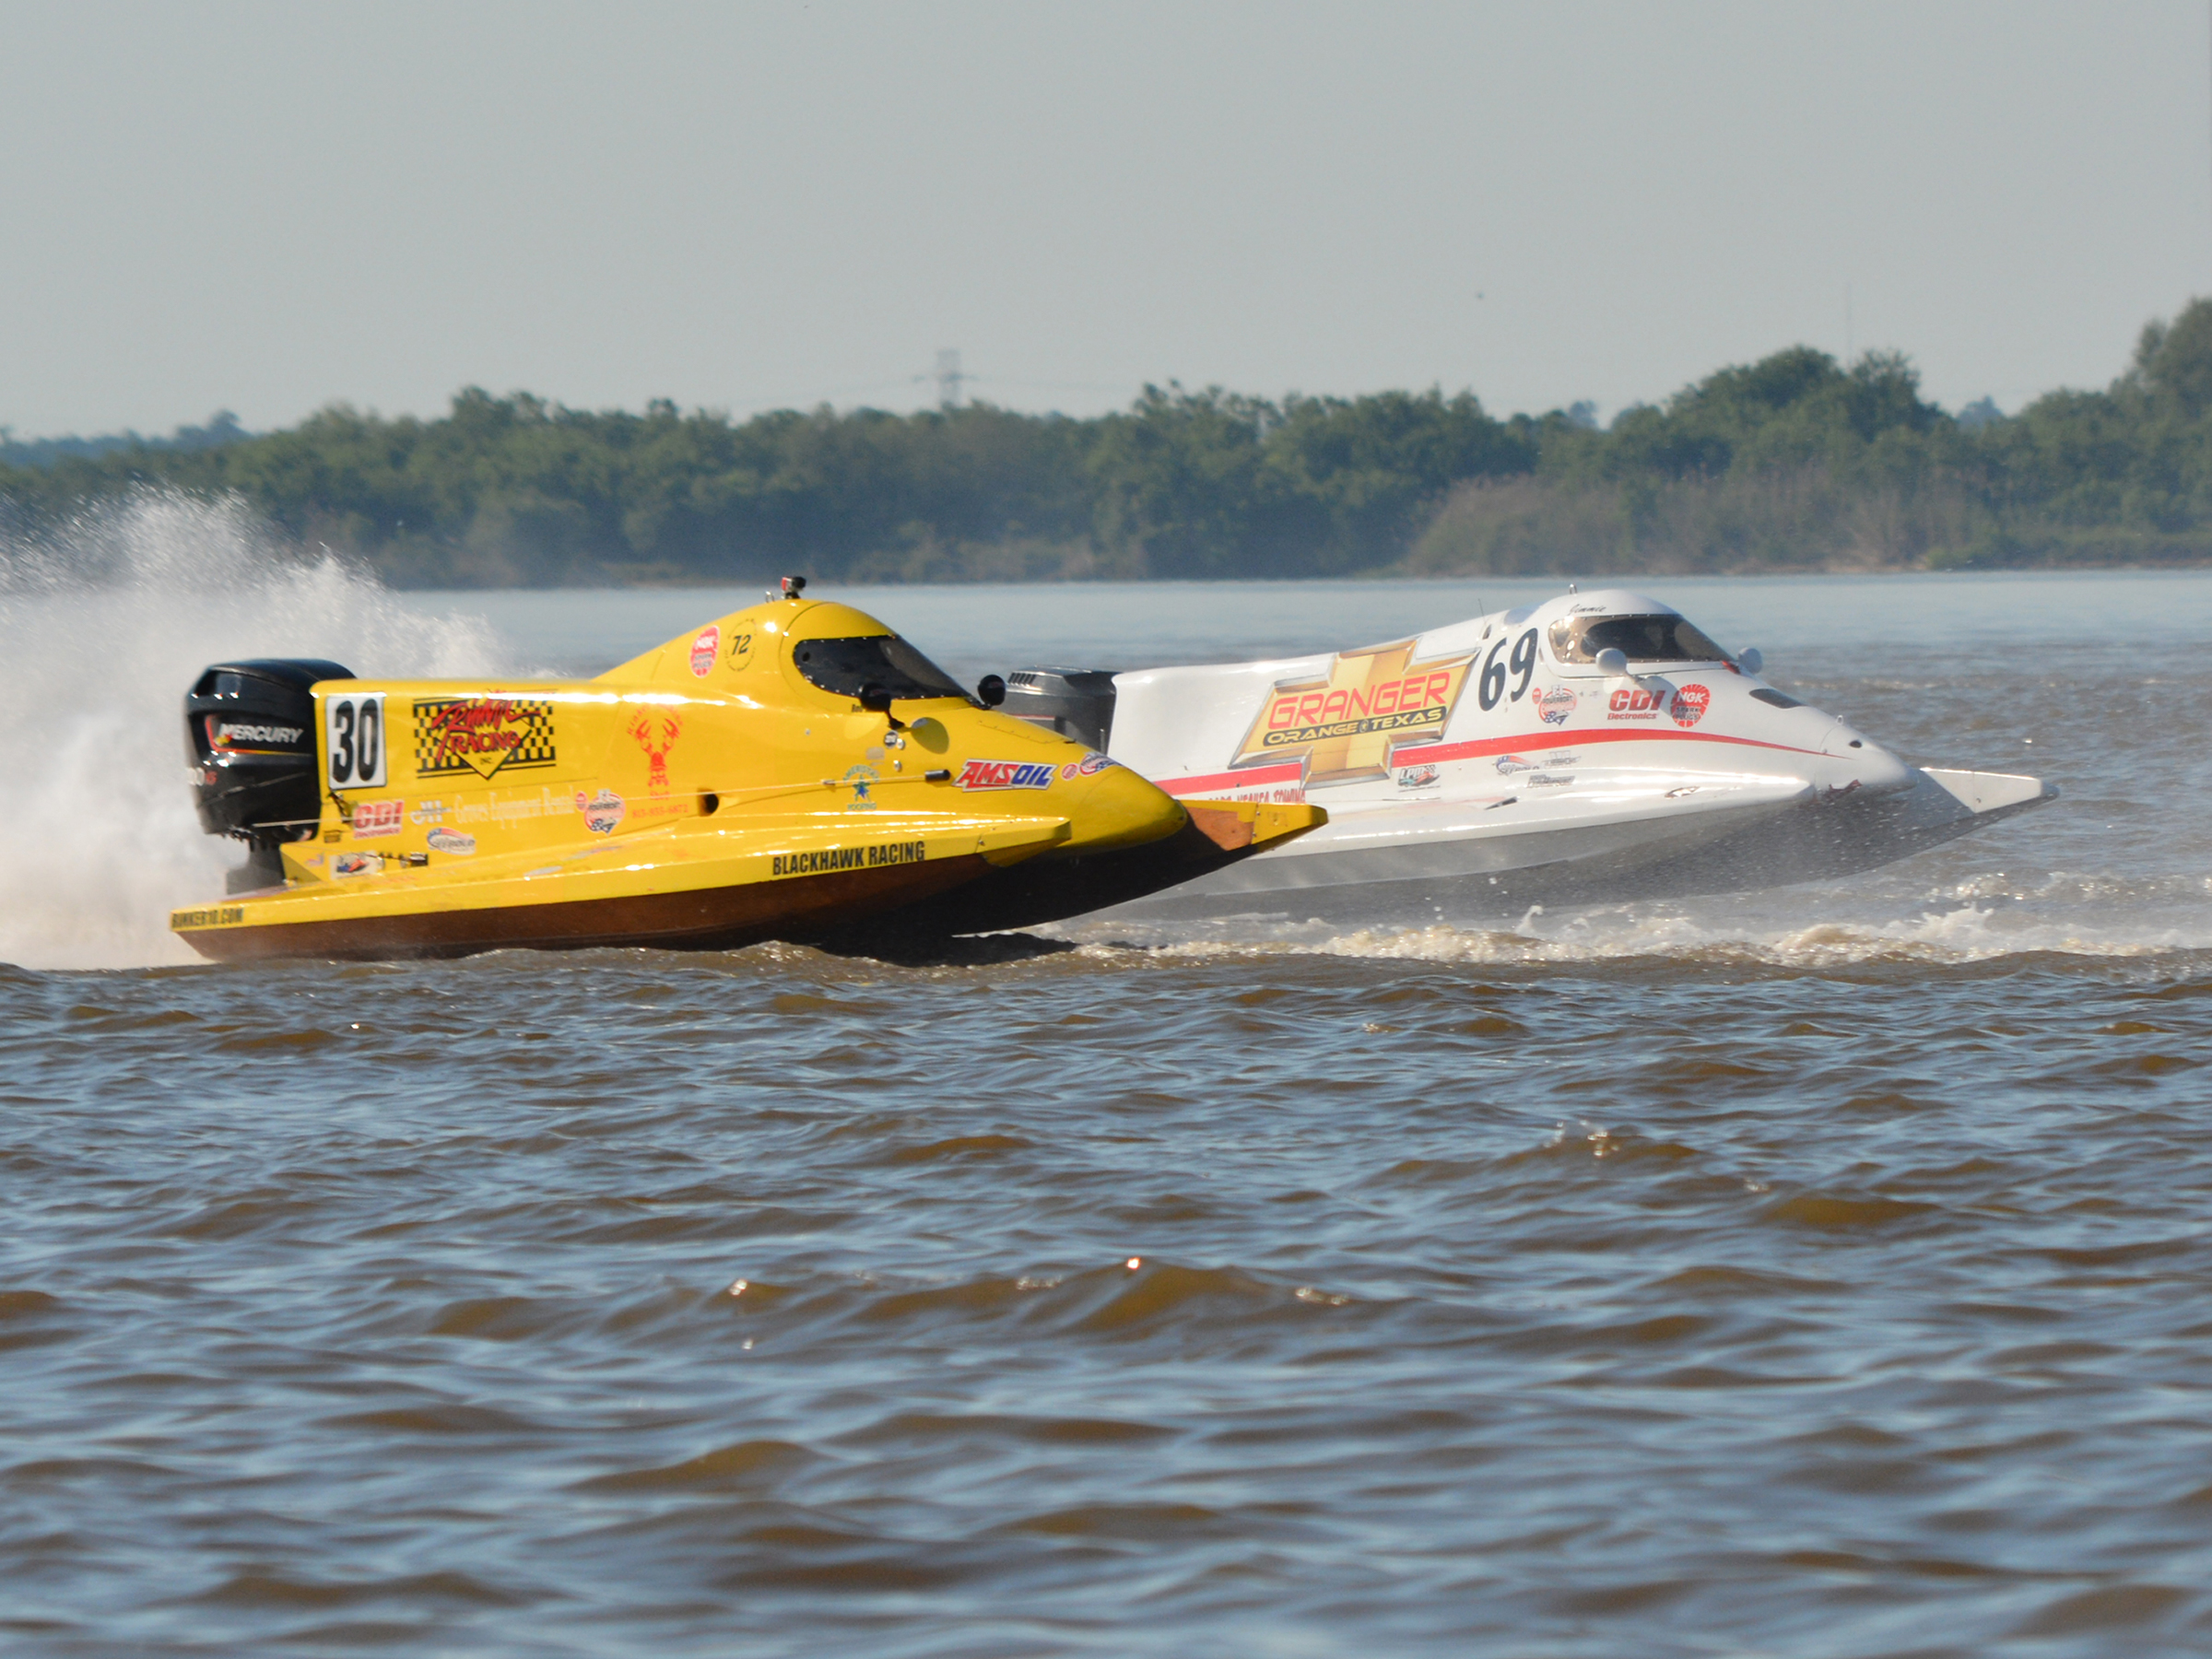 2018 NGK F1 Powerboat Championship 1st Race at the Port Neches